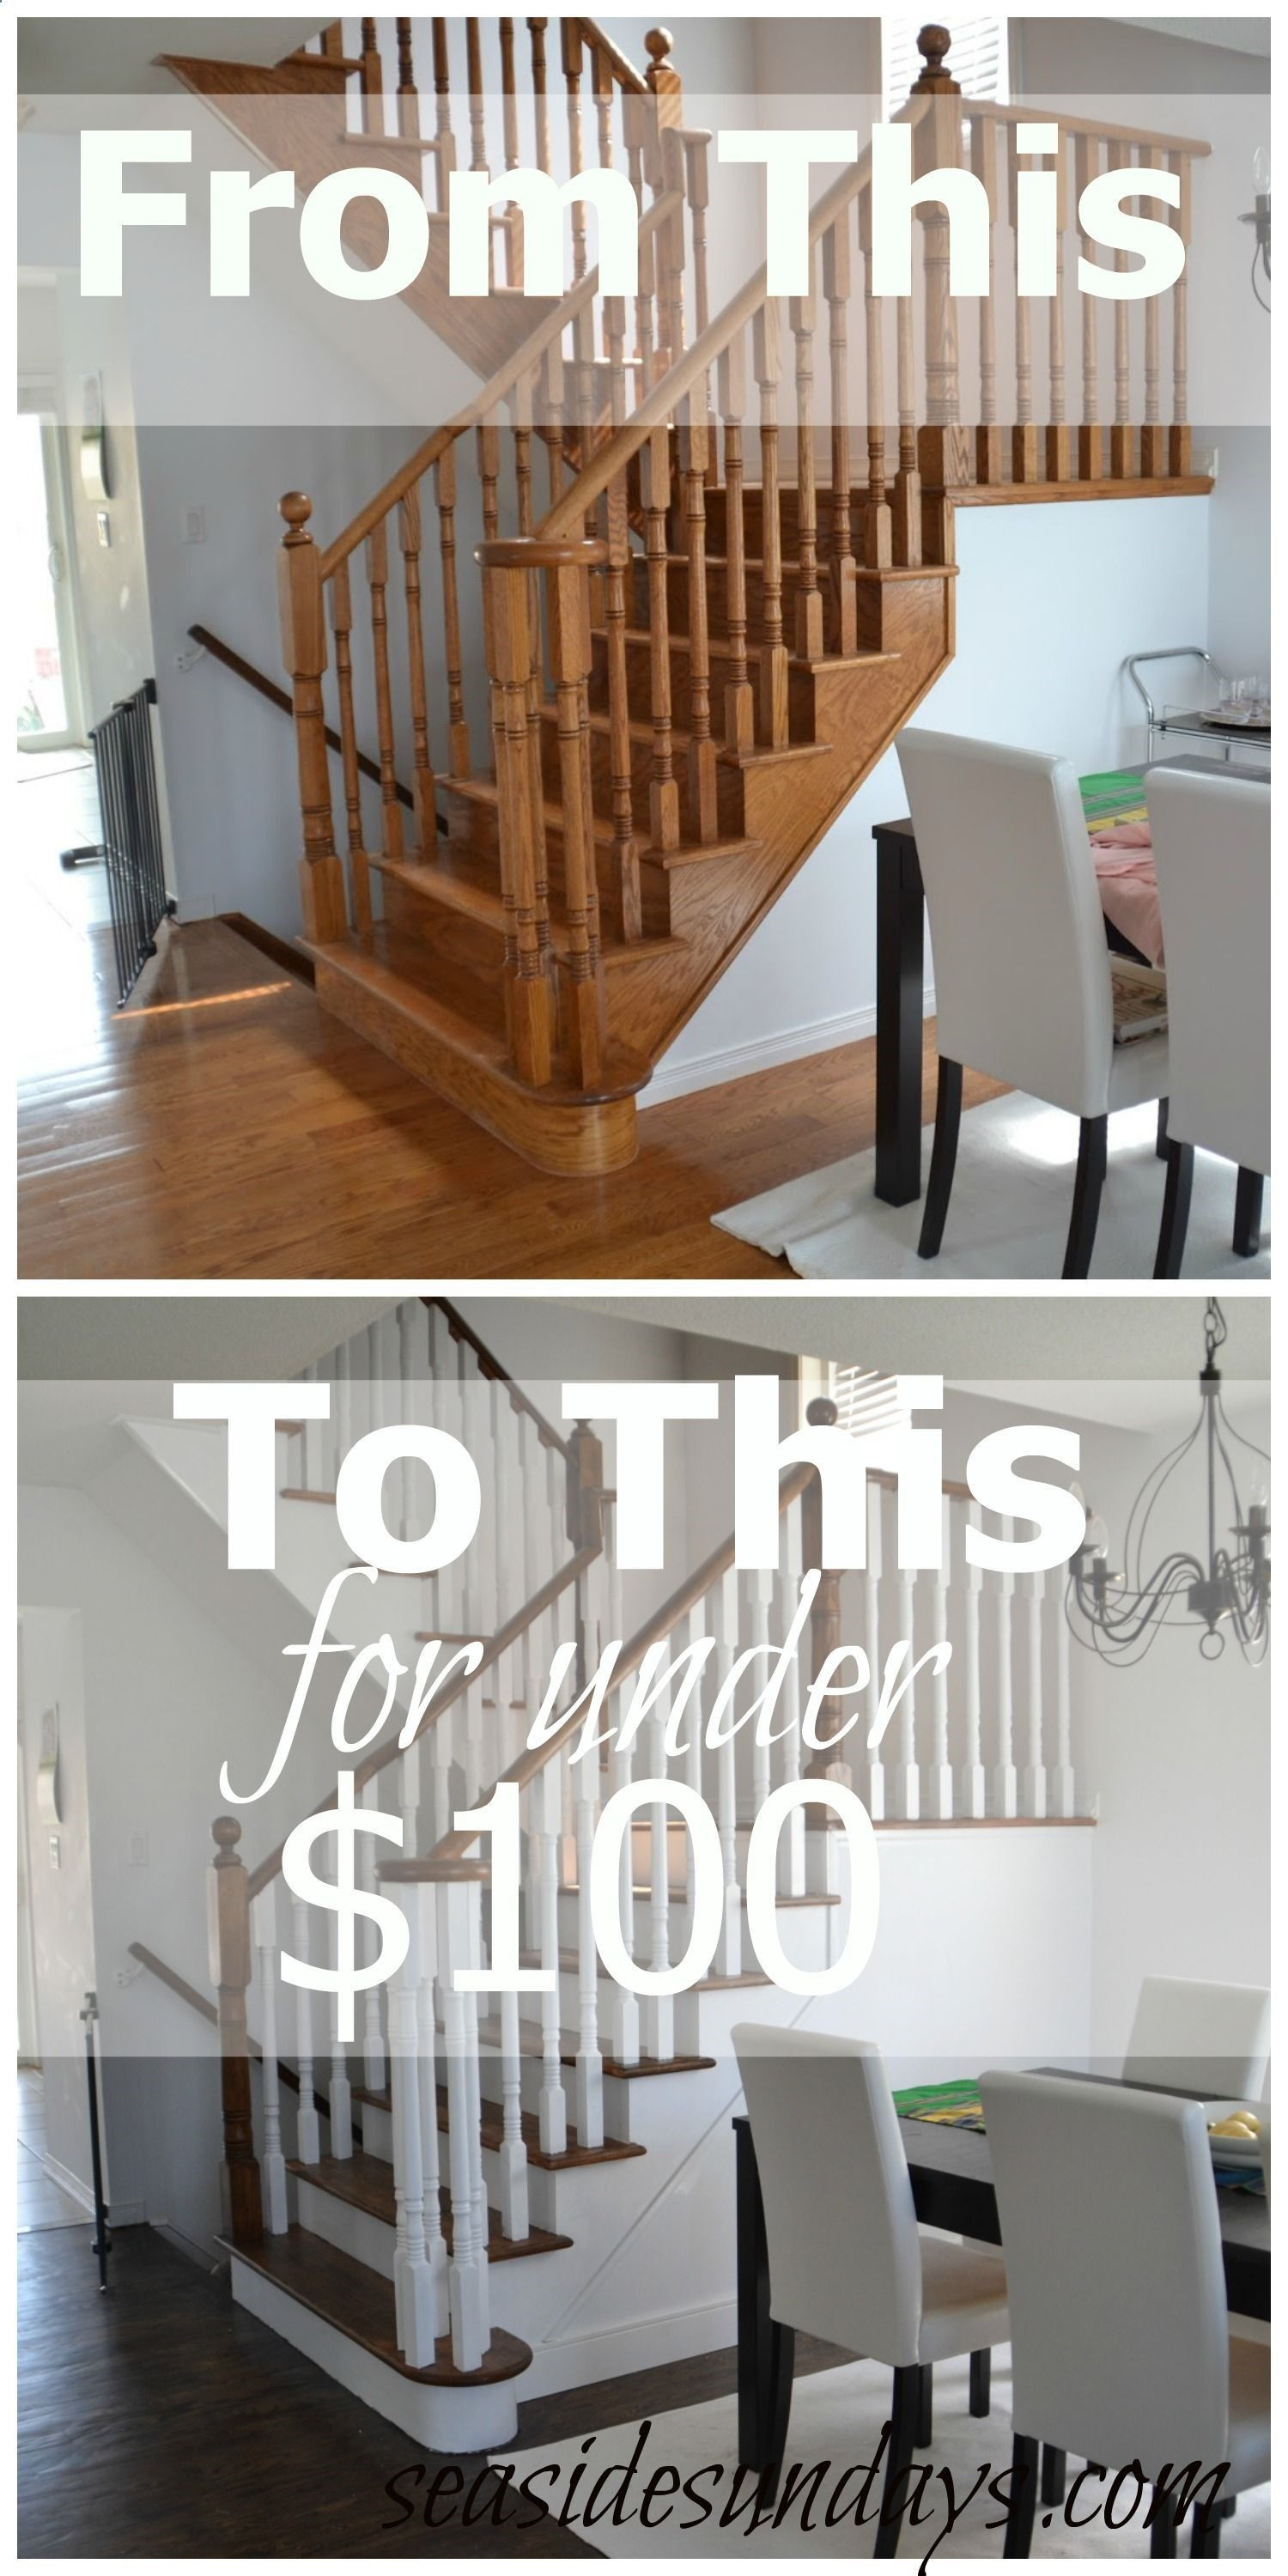 how expensive to refinish hardwood floors of wood profit woodworking how to refinish hardwood floors diy intended for wood profit woodworking how to refinish hardwood floors diy refinish and stain stairs